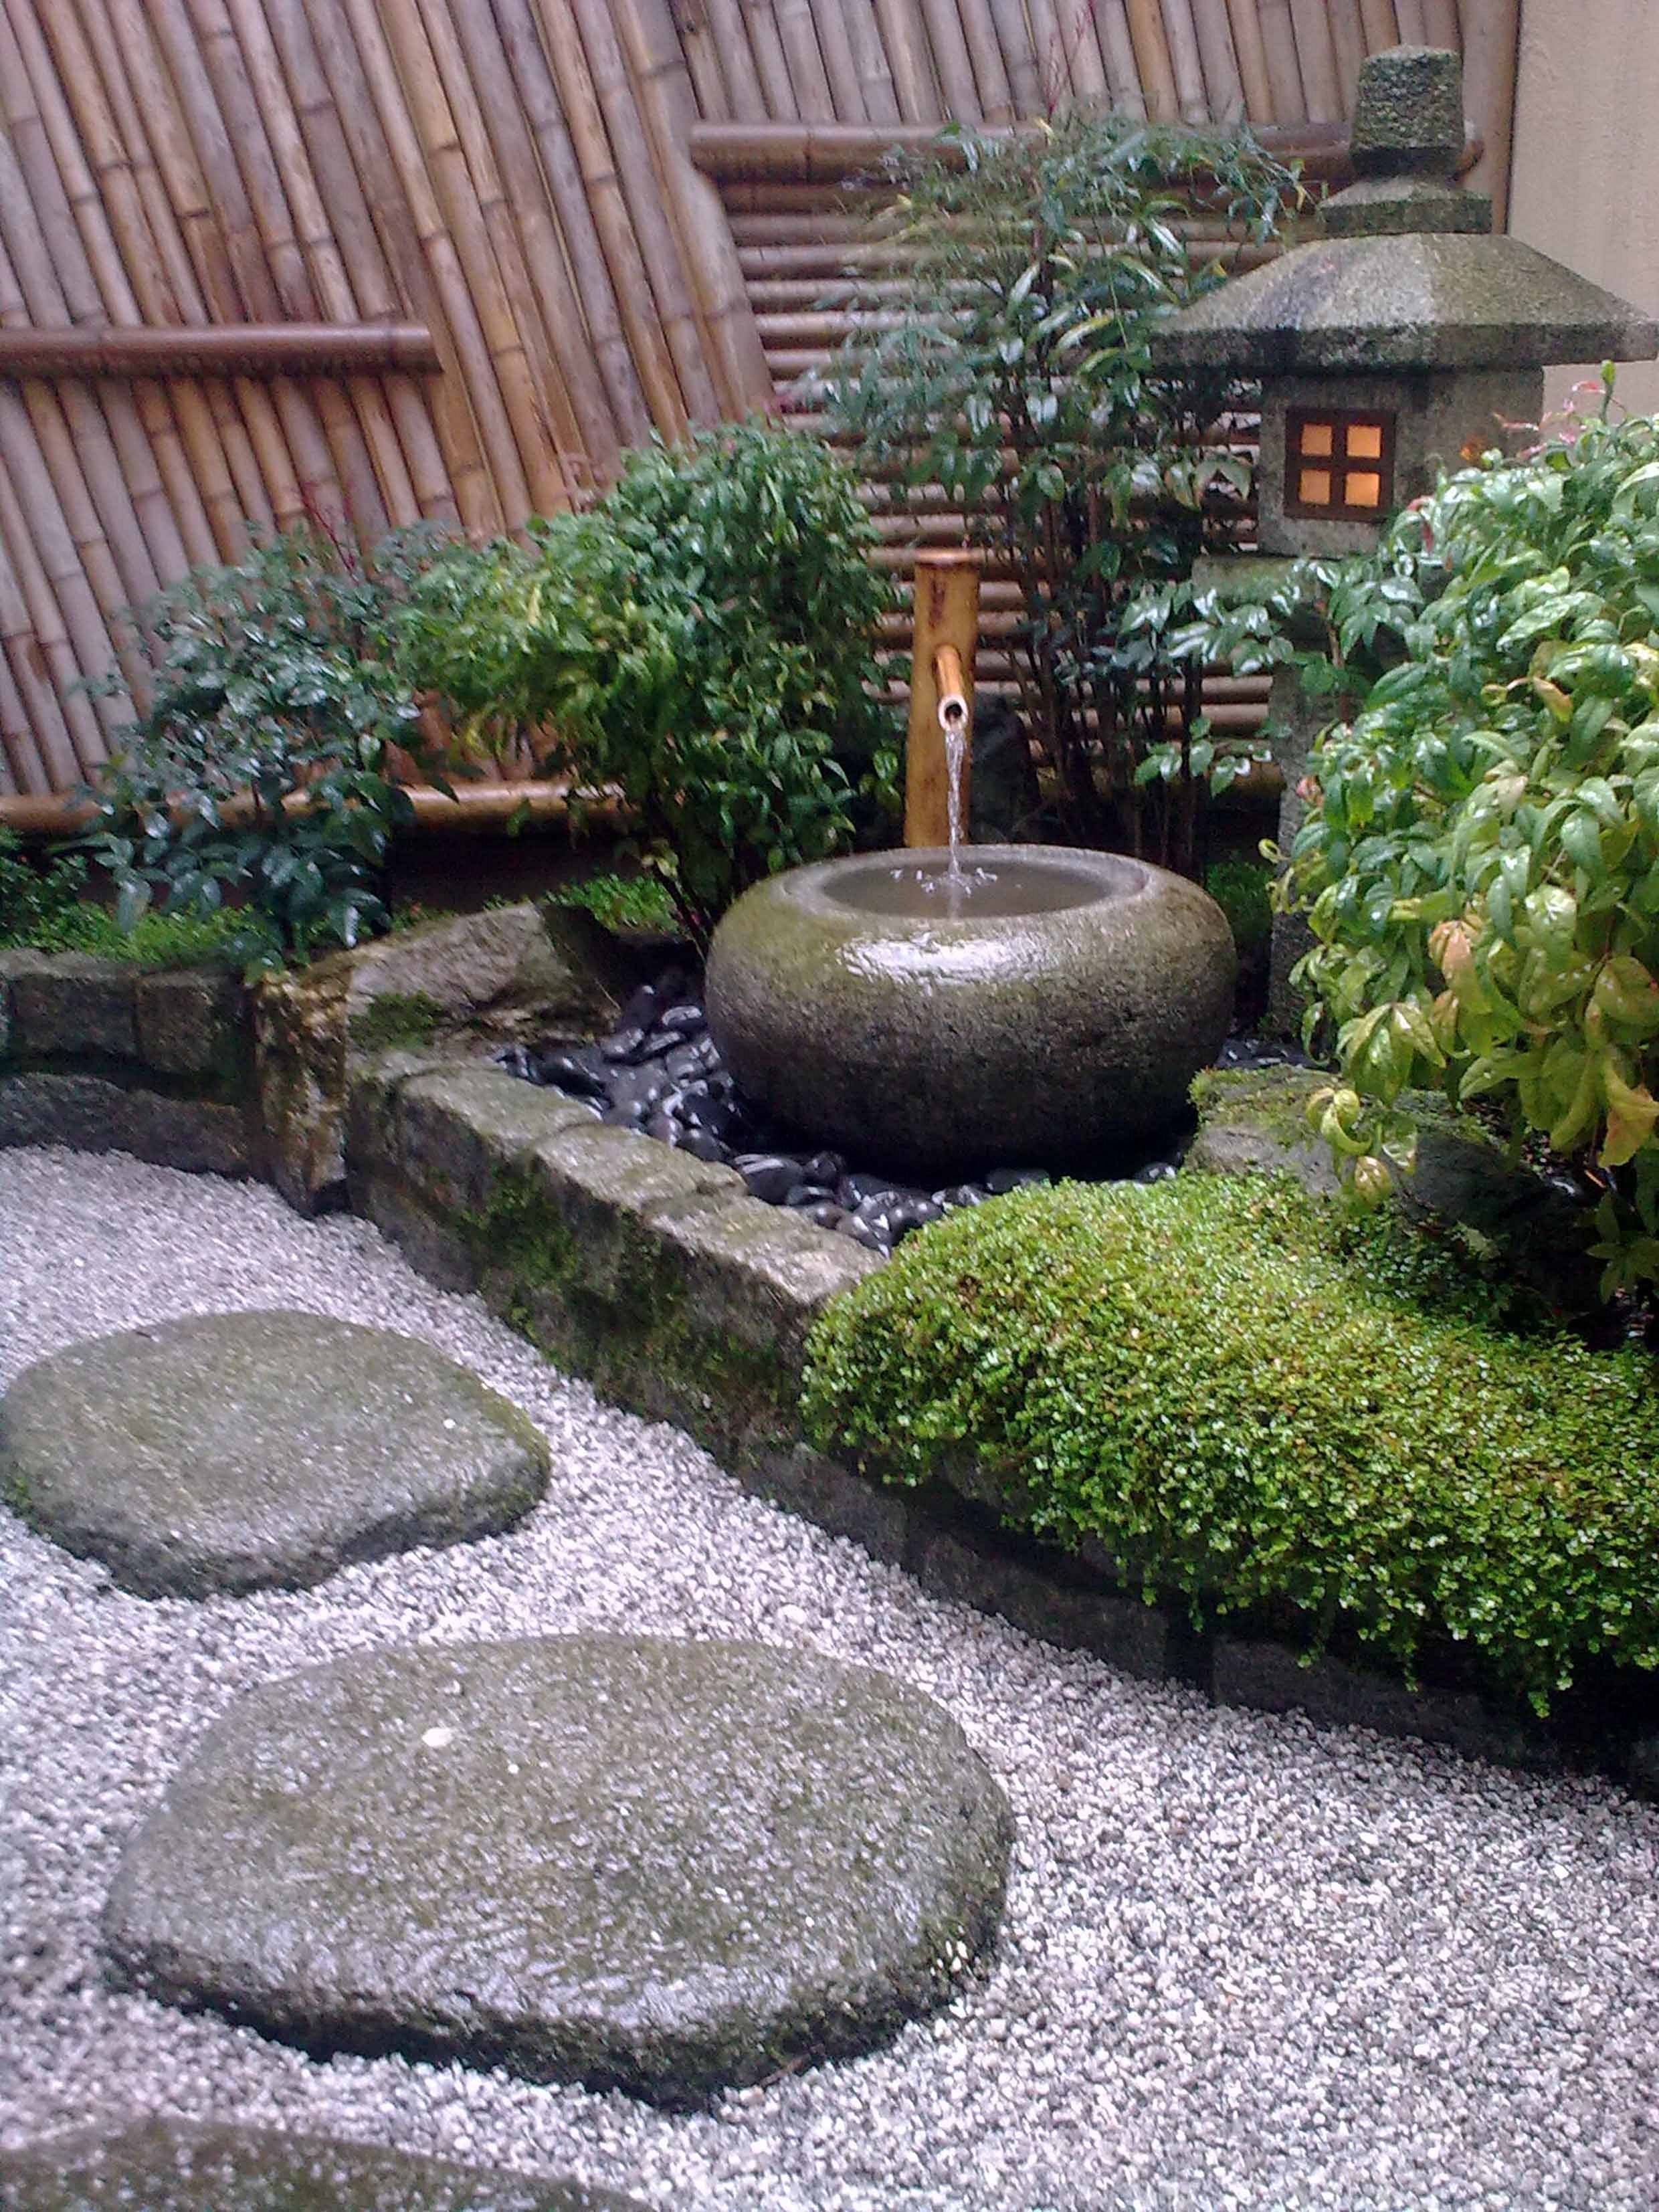 76 beautiful zen garden ideas for backyard 400 goodsgn - Japanese garden ideas for small spaces ...